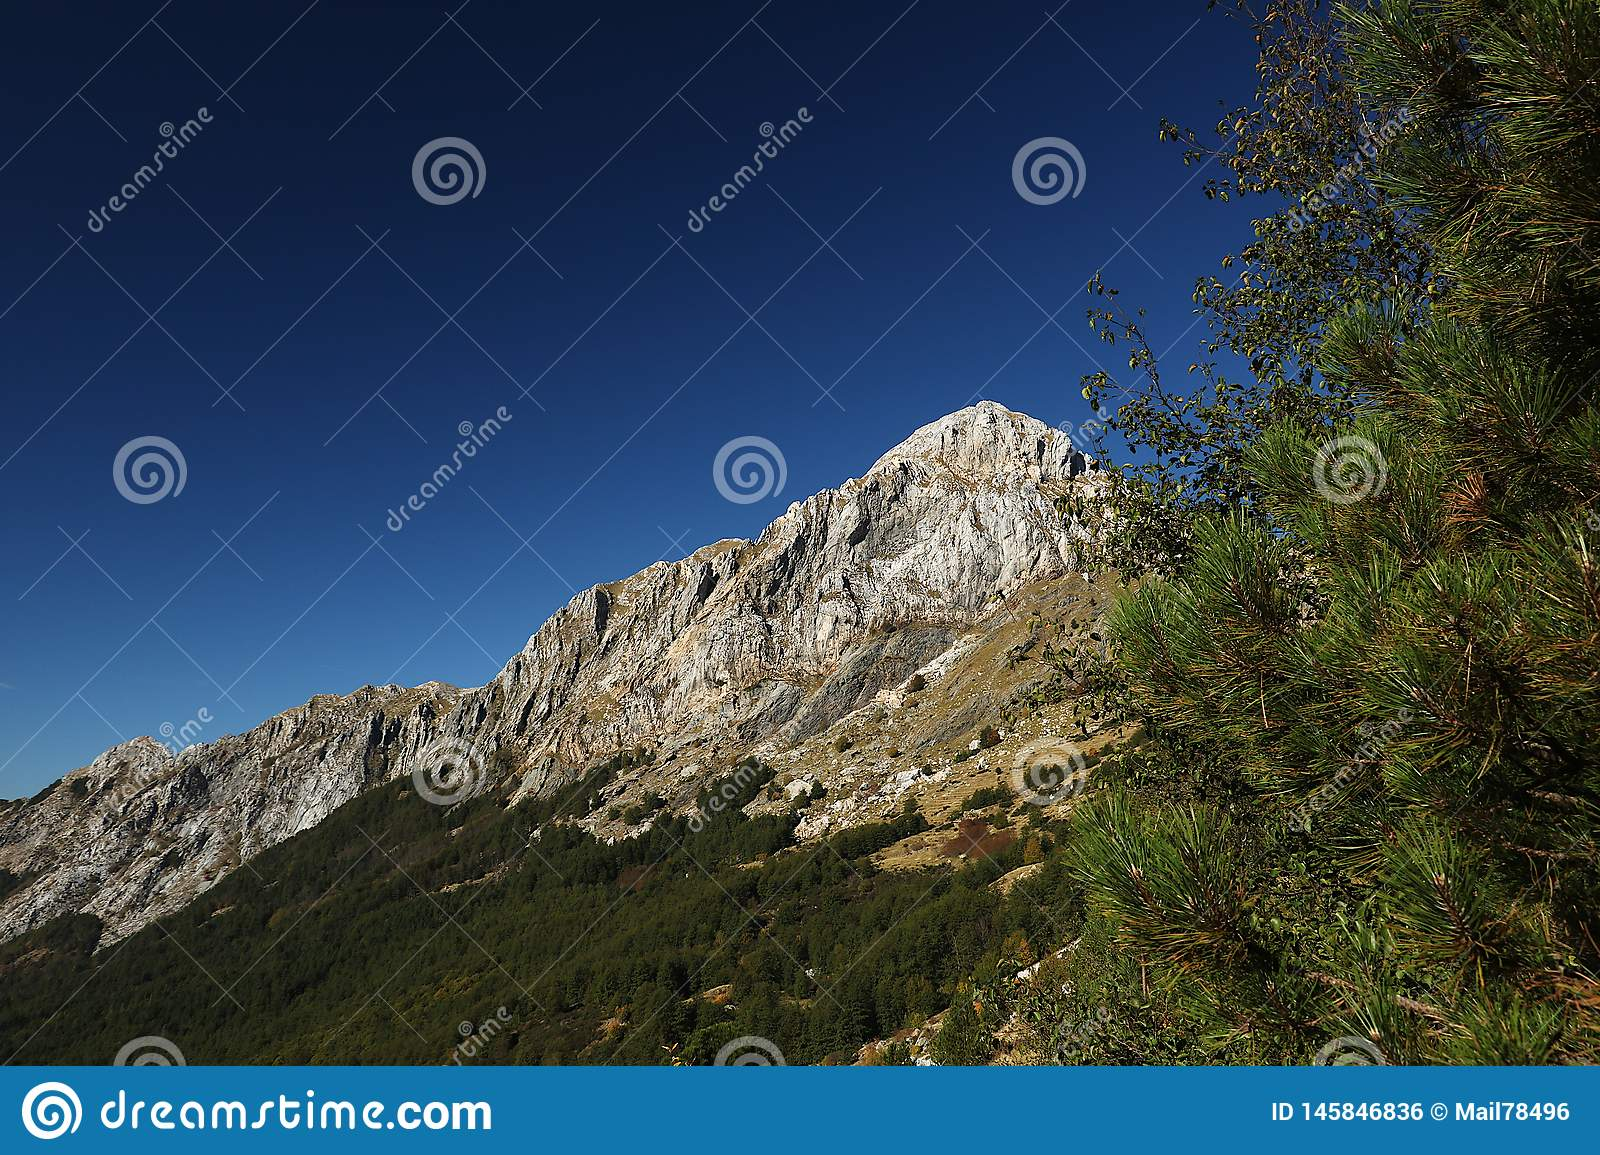 Alpi Apuane, Massa Carrara, Tuscany, Italy. The top of the Pizzo